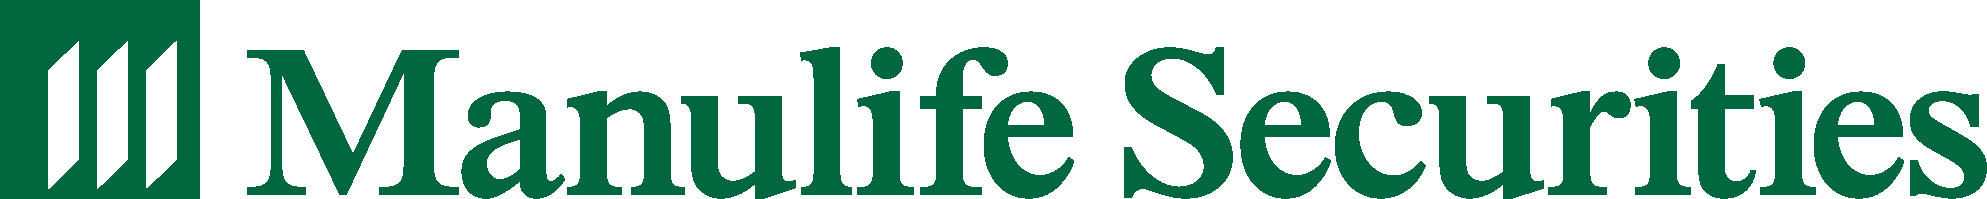 Stocks, bonds and mutual funds are offered through Manulife Securities Incorporated. Insurance products and services are offered through Manulife Securities Insurance Inc. Banking products and services are offered through referral.